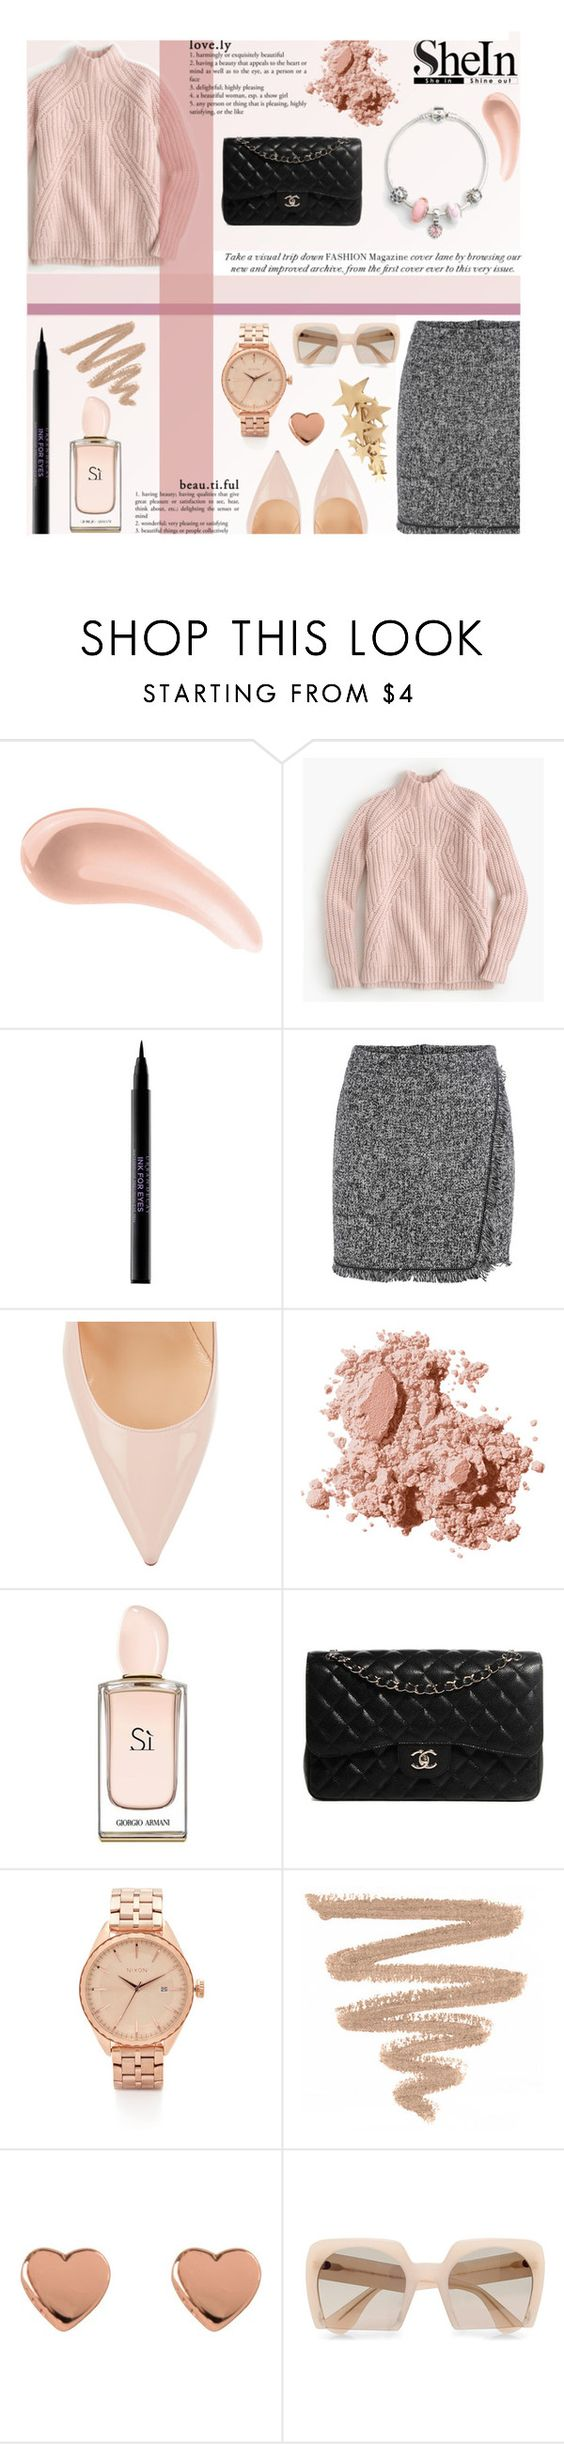 """SheIn Grey Fringe Bodycon Skirt"" by eks02 ❤ liked on Polyvore featuring NARS Cosmetics, J.Crew, Urban Decay, Christian Louboutin, Bobbi Brown Cosmetics, Giorgio Armani, Chanel, Nixon, Ted Baker and Miu Miu"